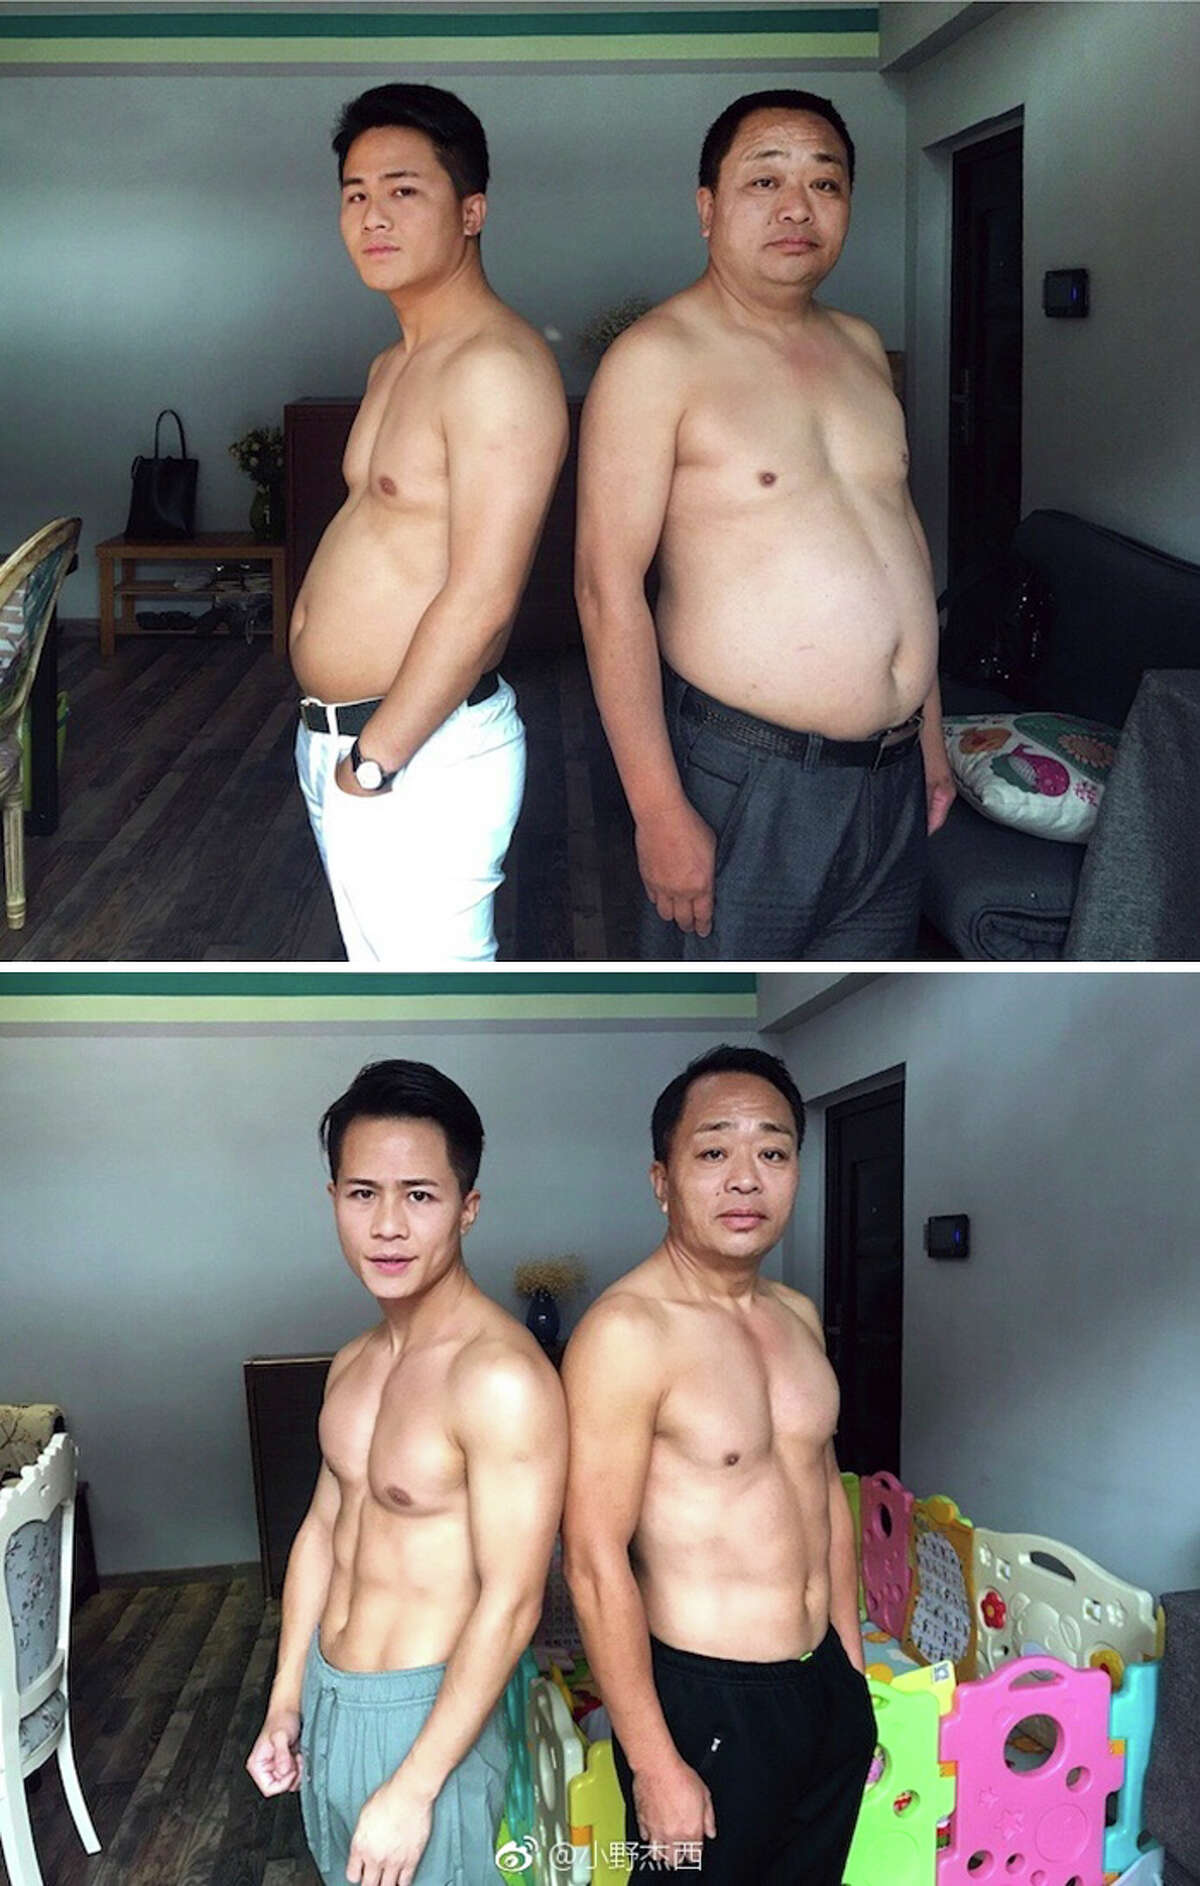 His father was the most transformed. Chinese photographer Jesse Ding documented the progress of his family's joint fitness and weight-loss program over six months.